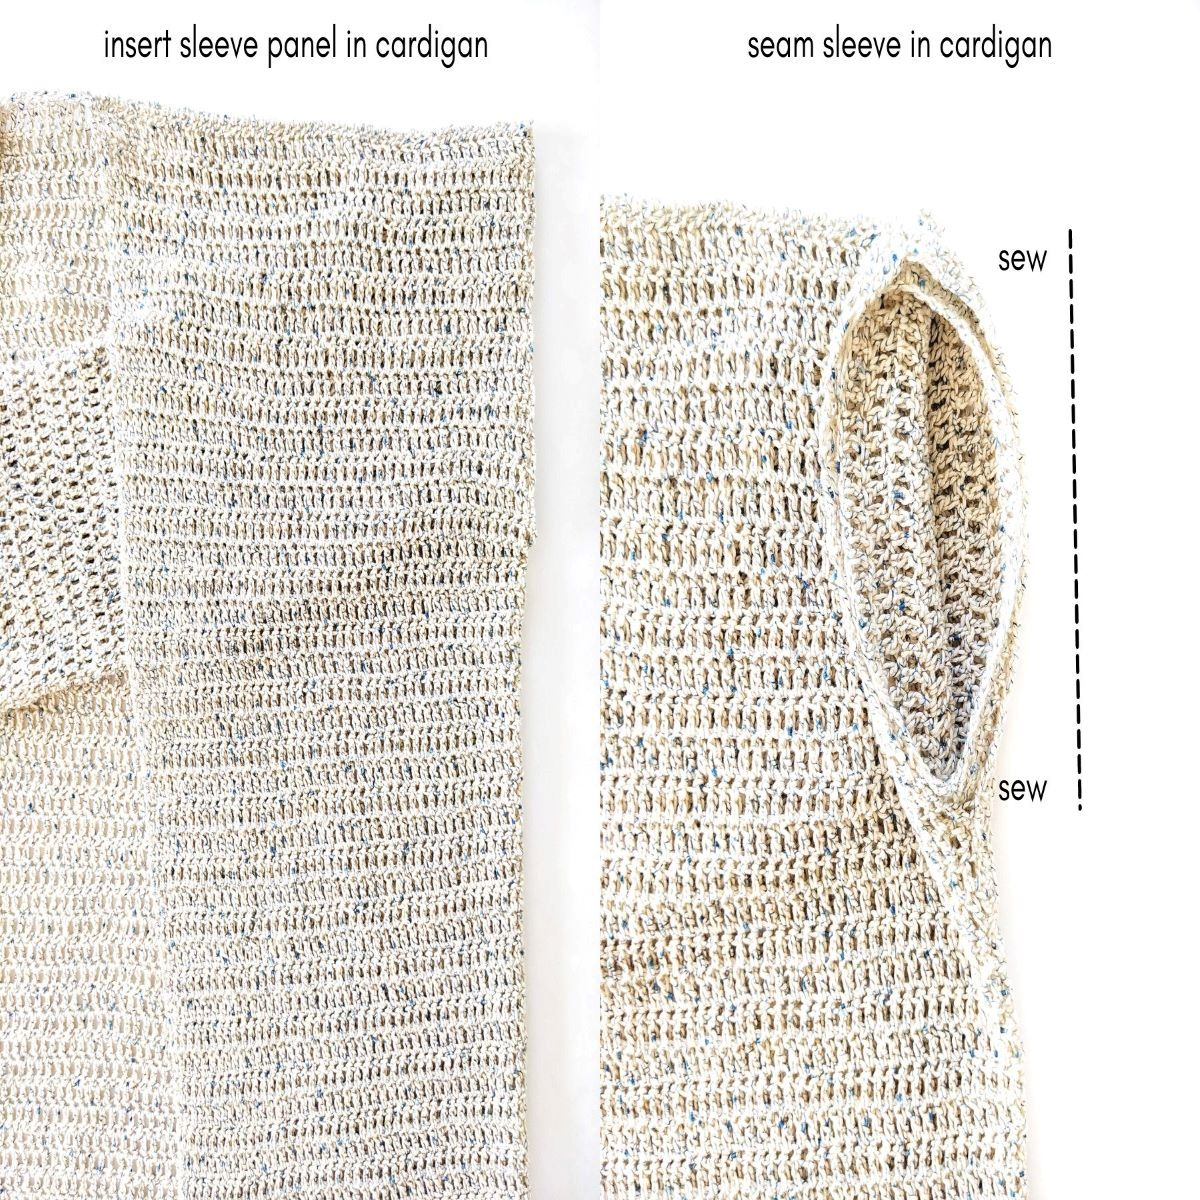 sewing your sleeve onto your cotton cardigan